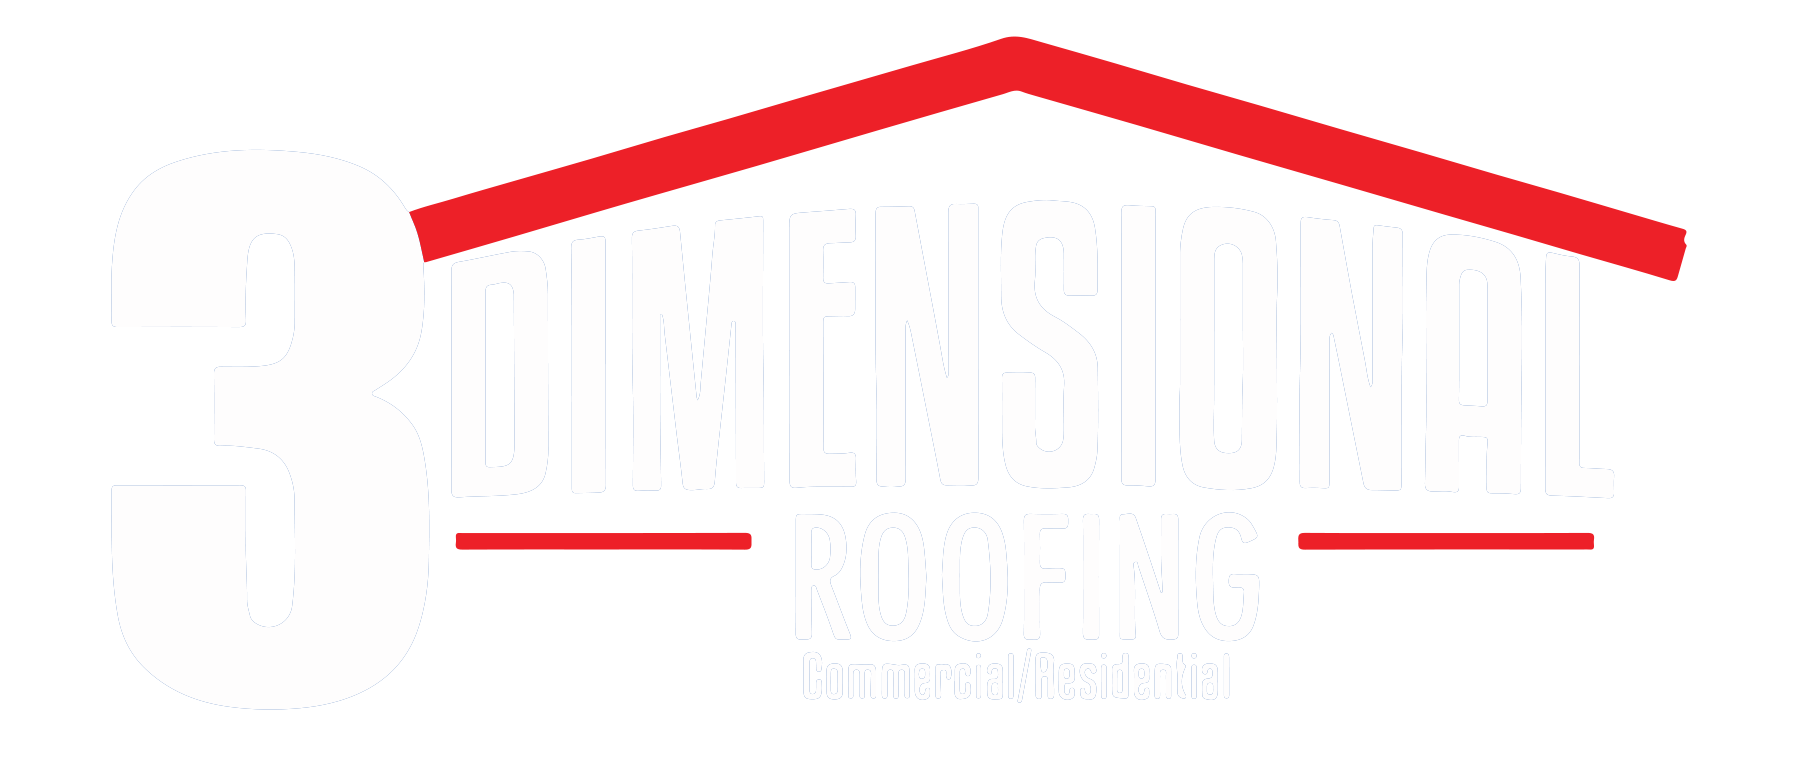 Standing Seam Metal Roofing – 19 Dimensional Roofing